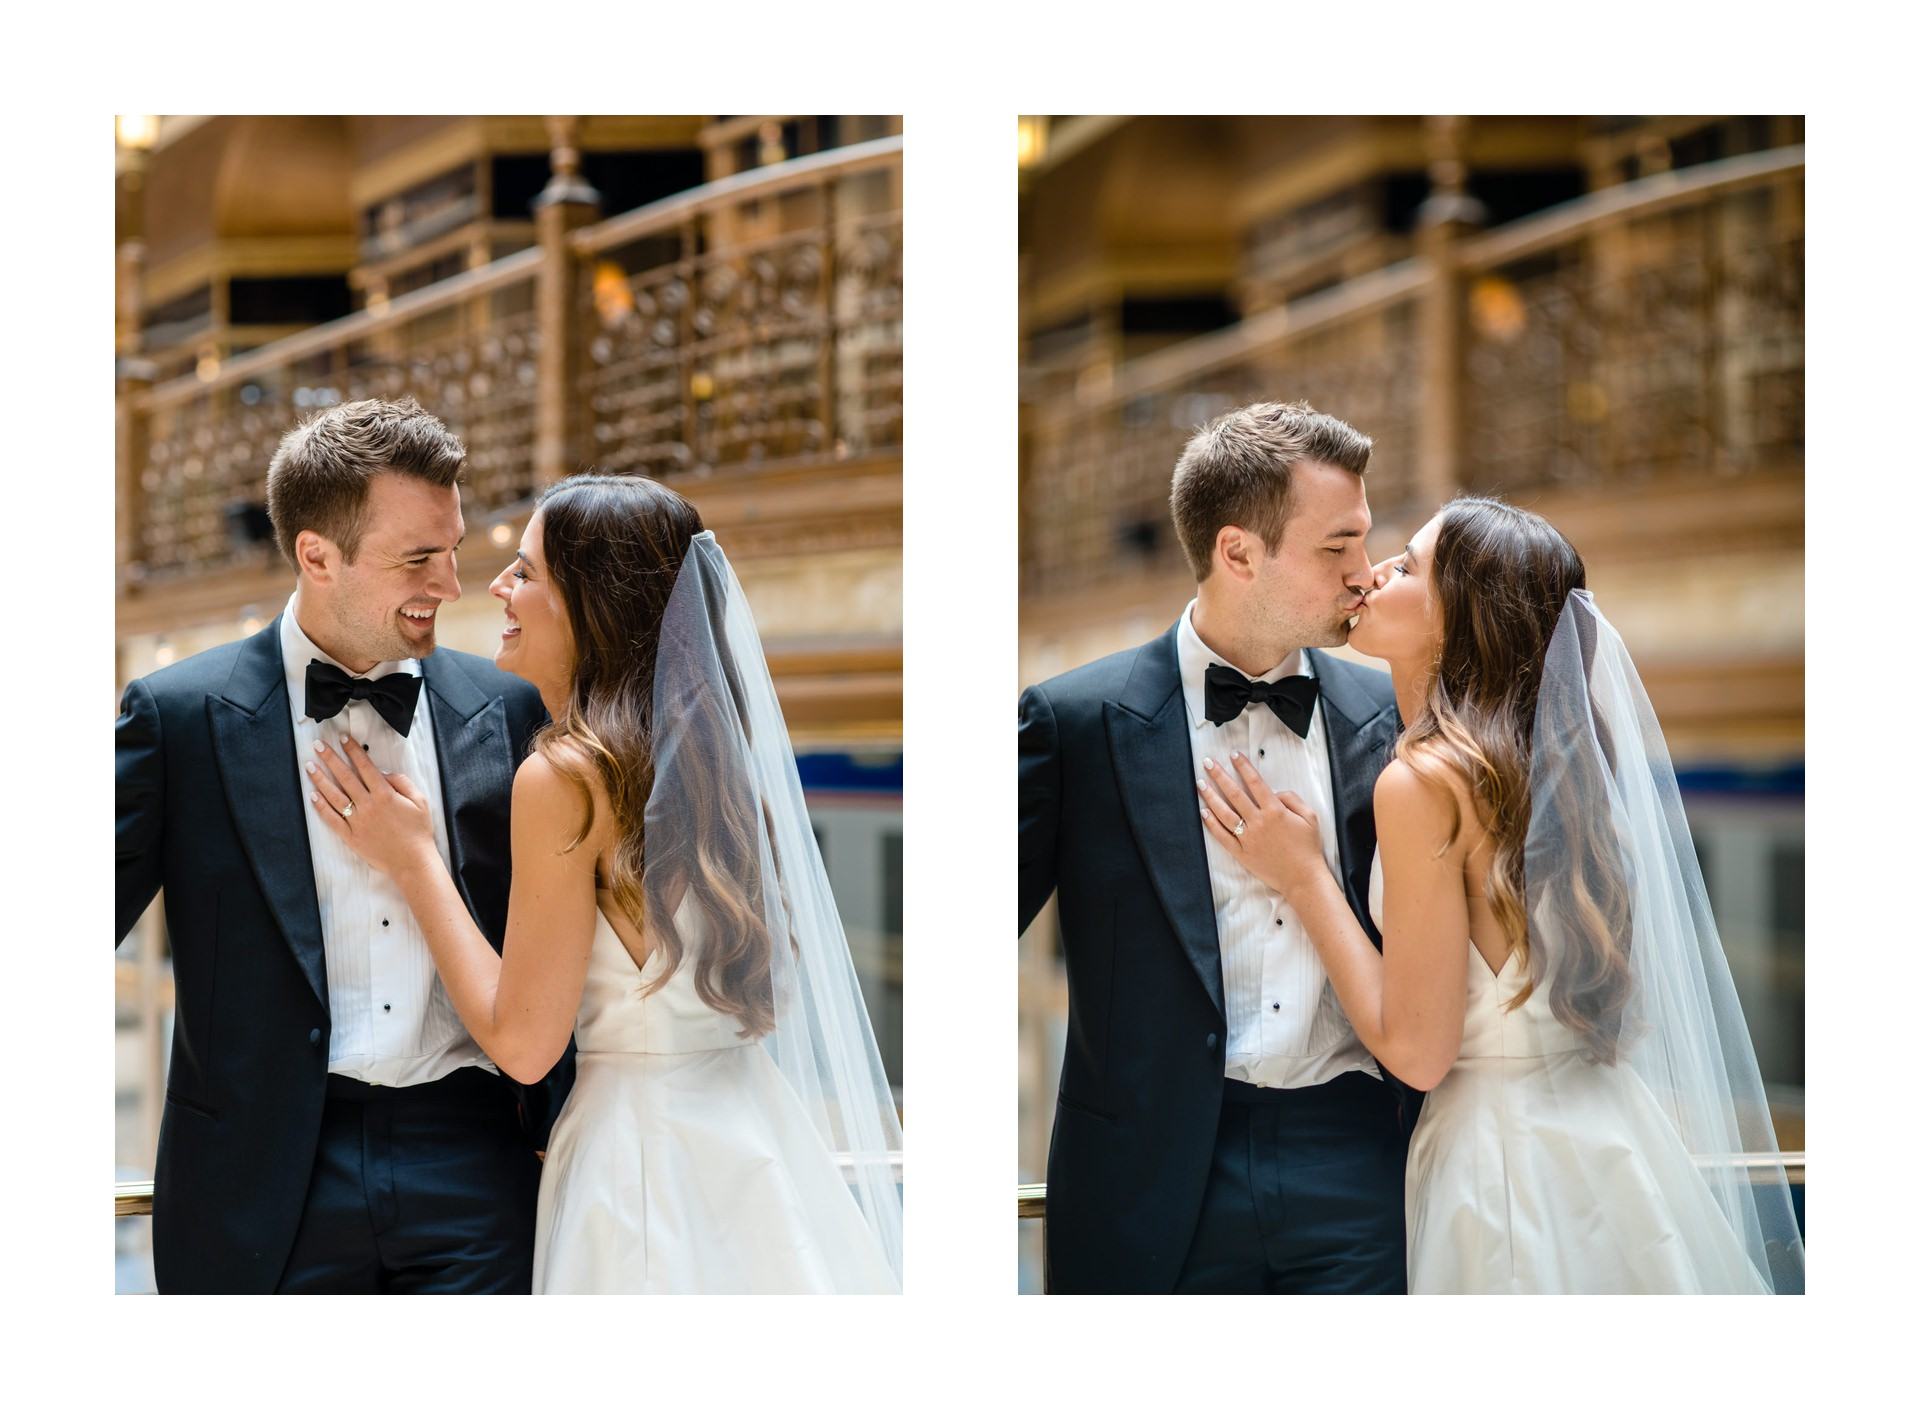 Cleveland Histroy Center Wedding Photographer at WRHS 13.jpg